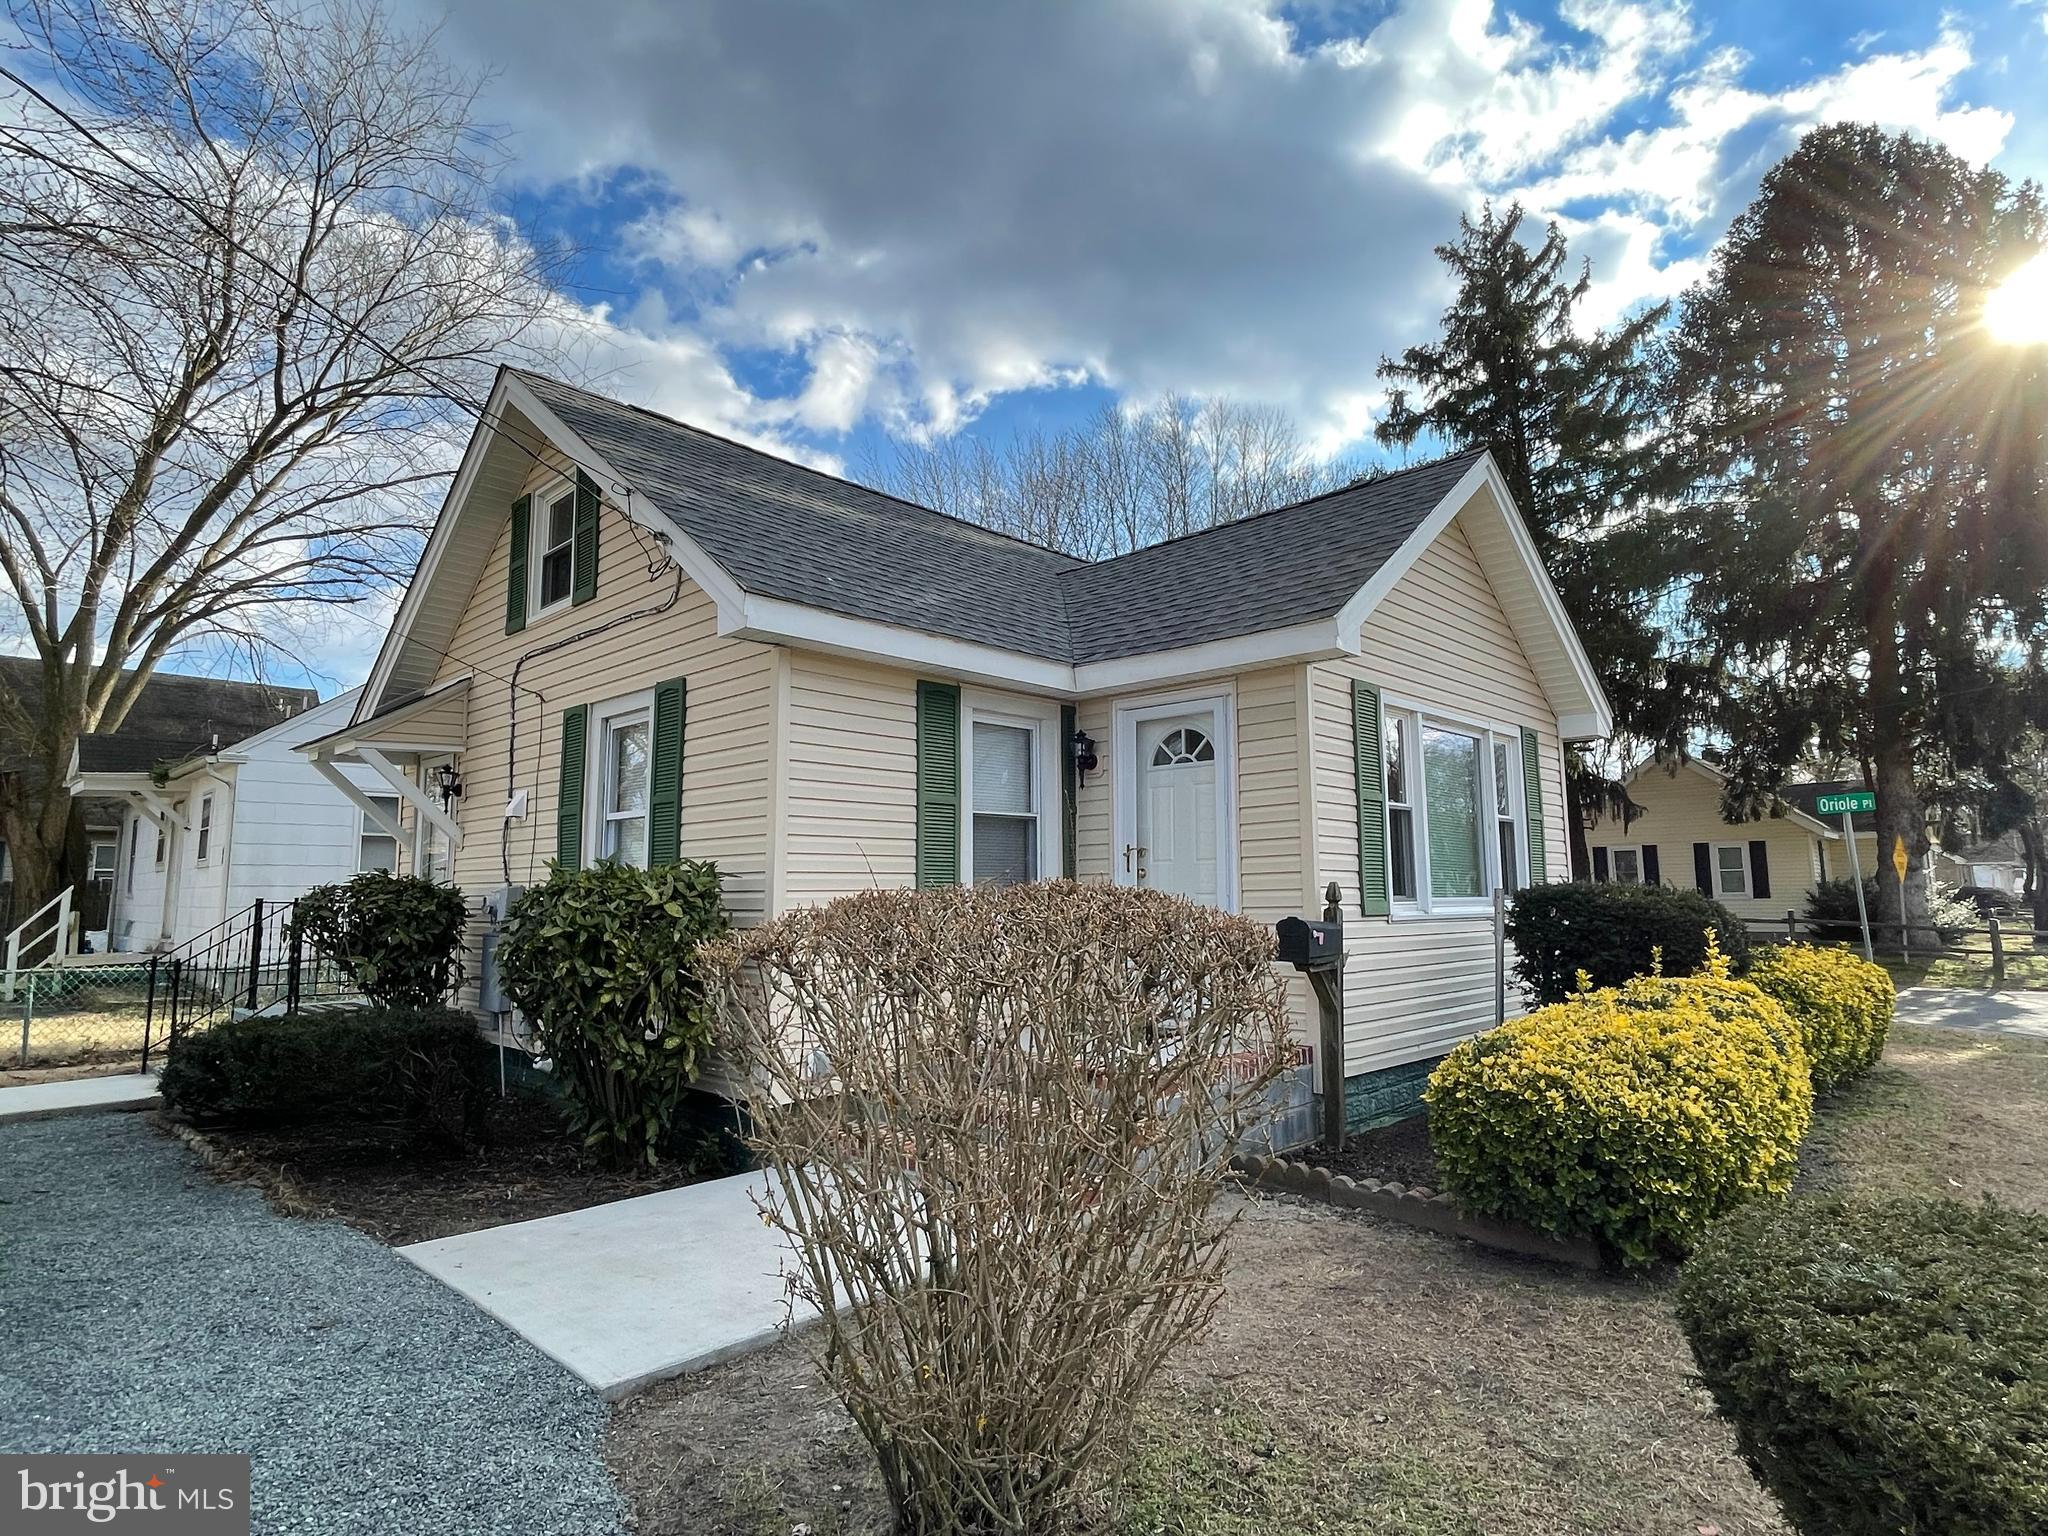 Don't miss the opportunity to own this completely renovated cape cod within walking distance to Prin